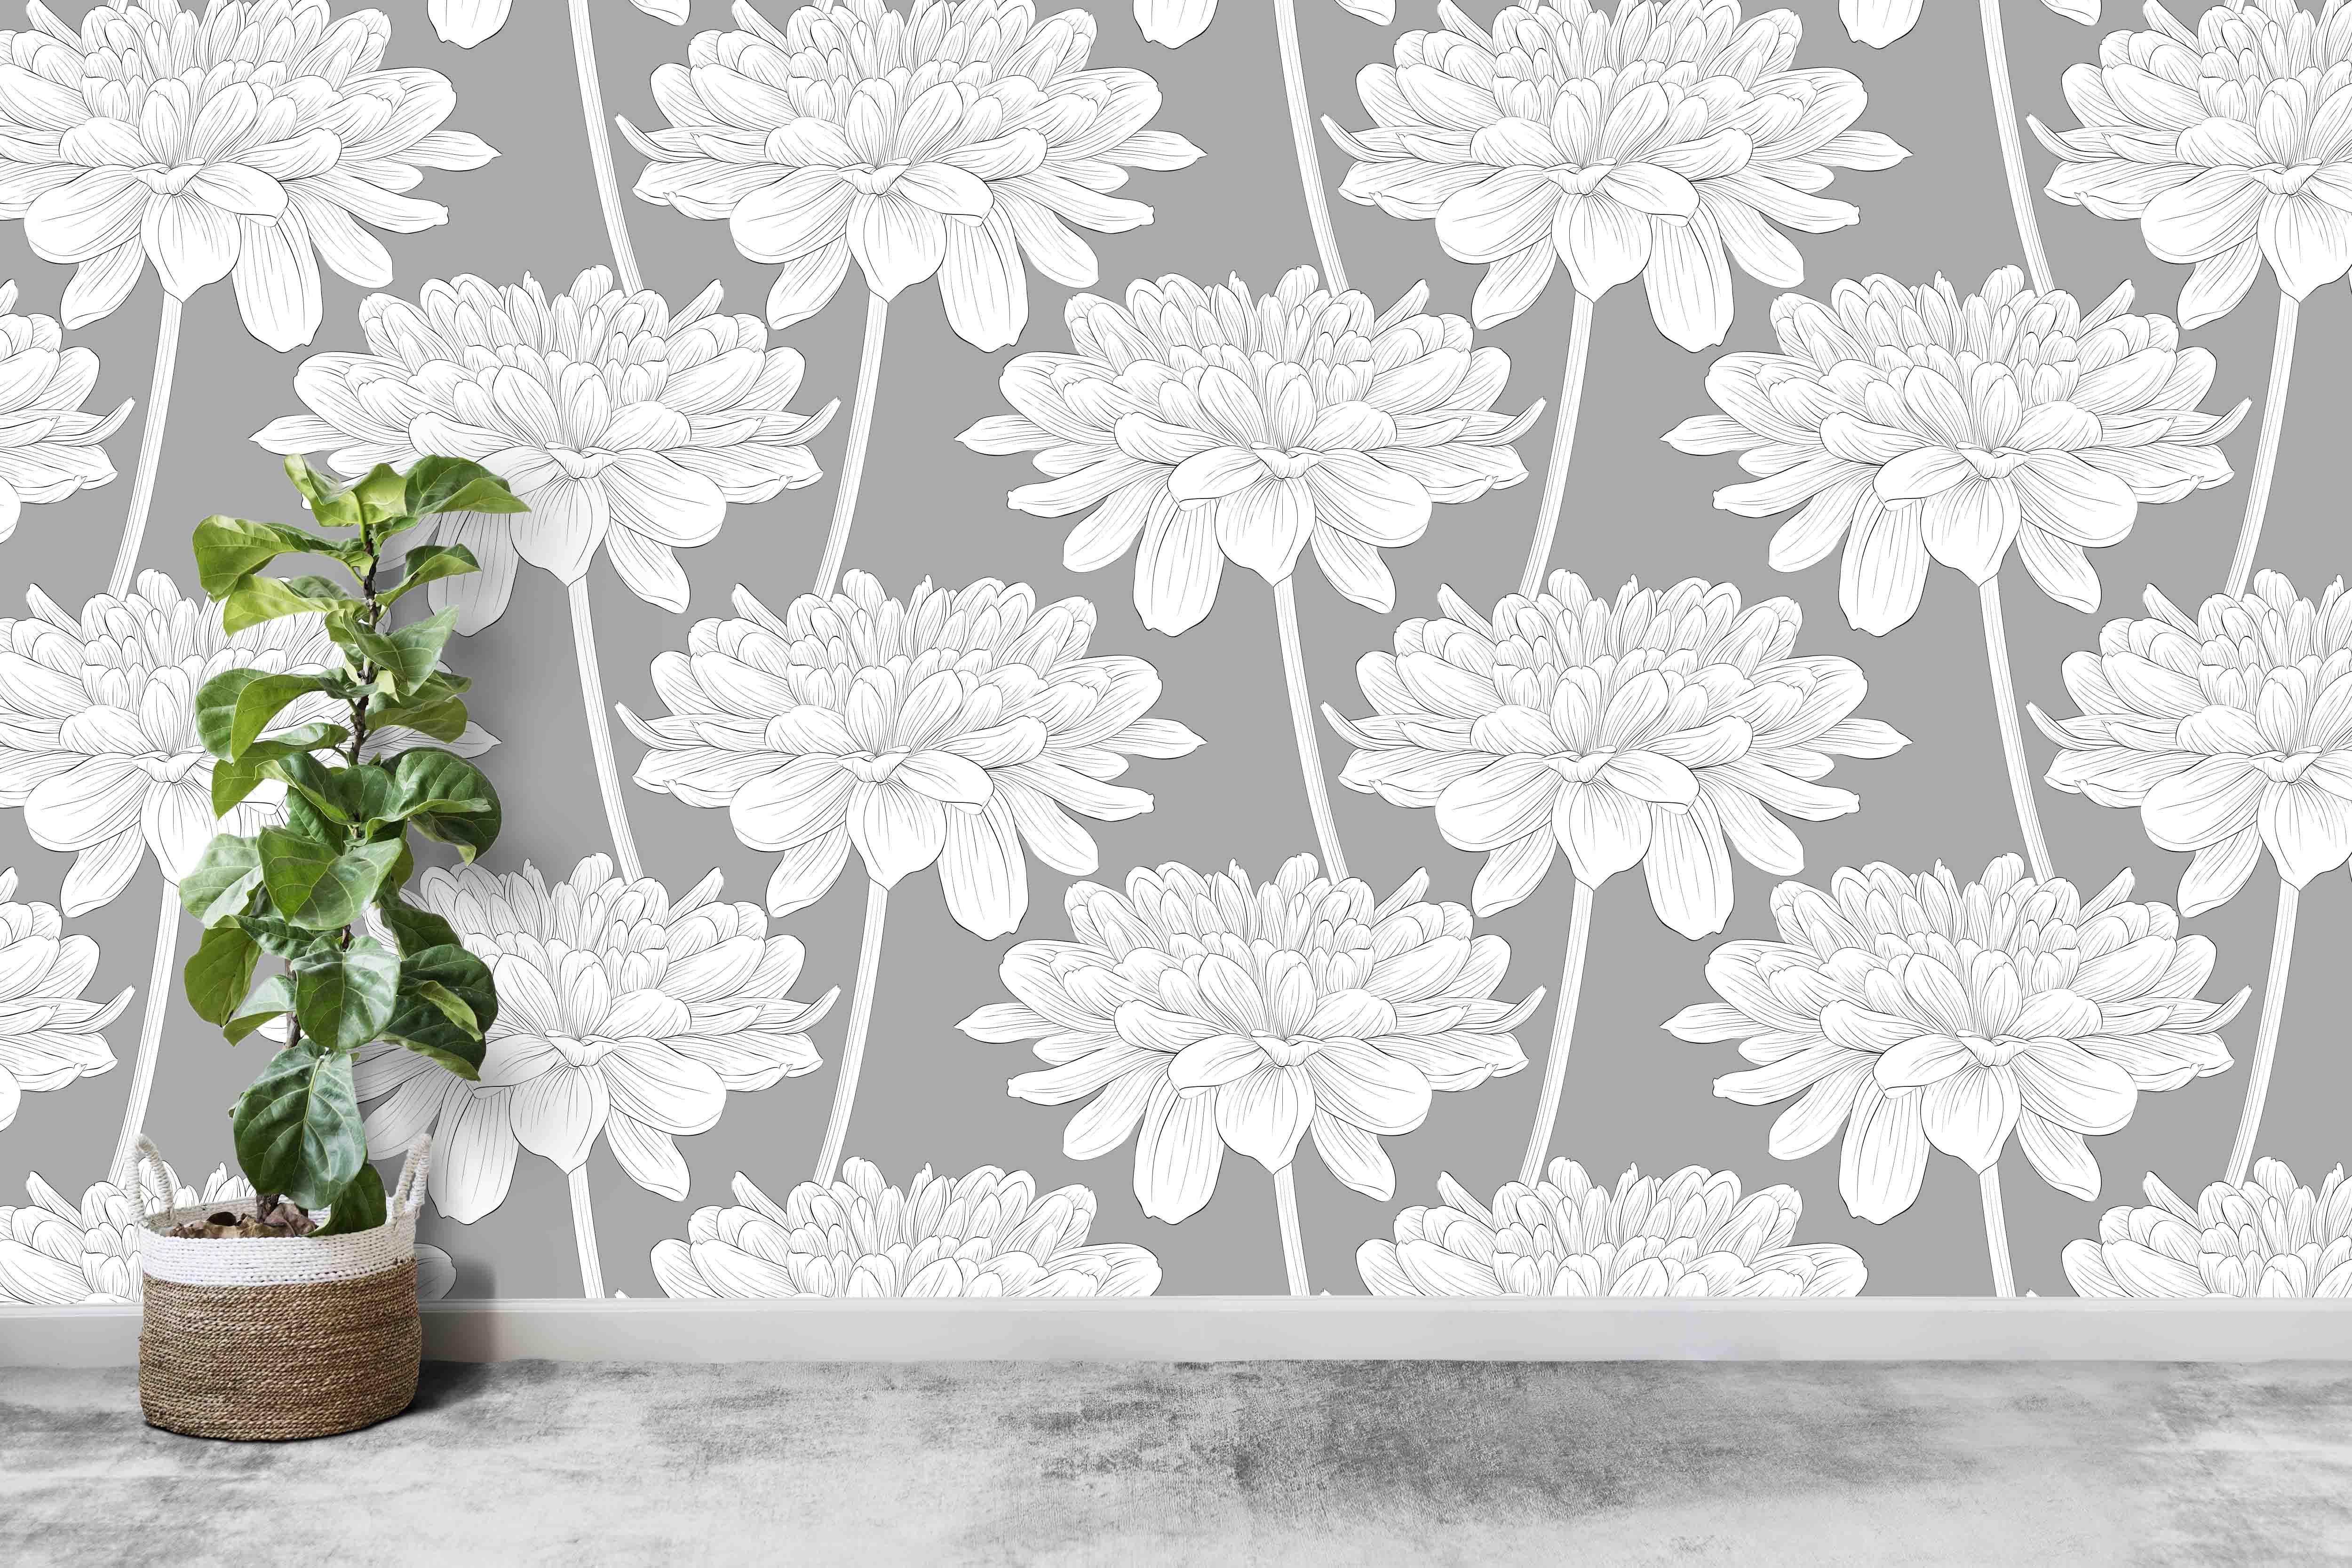 Grey Interior Home Decor Ideas Peel And Stick Wallpaper Mural Floral Wall Covering Floral Wallpaper Mural Wallpaper Floral Wall